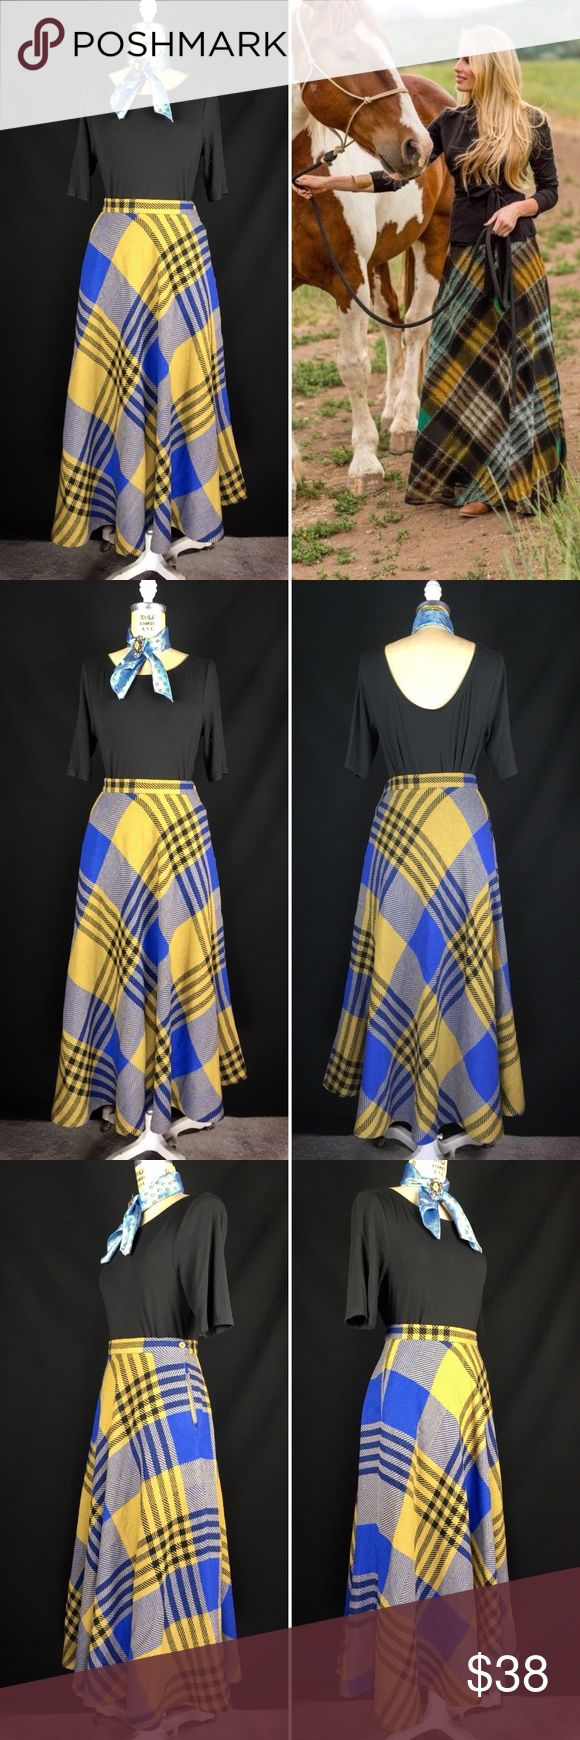 """1980's DVF Plaid Wool Blend A-line Long Midi Skirt Vintage 1980's Diane Von Furstenberg Plaid Wool Blend A-line Midi Skirt. Excellent vintage condition. Blue, Black and olive green wool blend plaid. Side button closure. A-line styling with hip pockets. Labeled a size 8. Fits modern 6. Measurements of the item in inches when flat: Waist: 13"""" Hips: 24"""" Hemline: 58"""" Length: 34"""" Feel free to contact me with any questions you may have. Please take a look at my other unique listings too. Thanks…"""